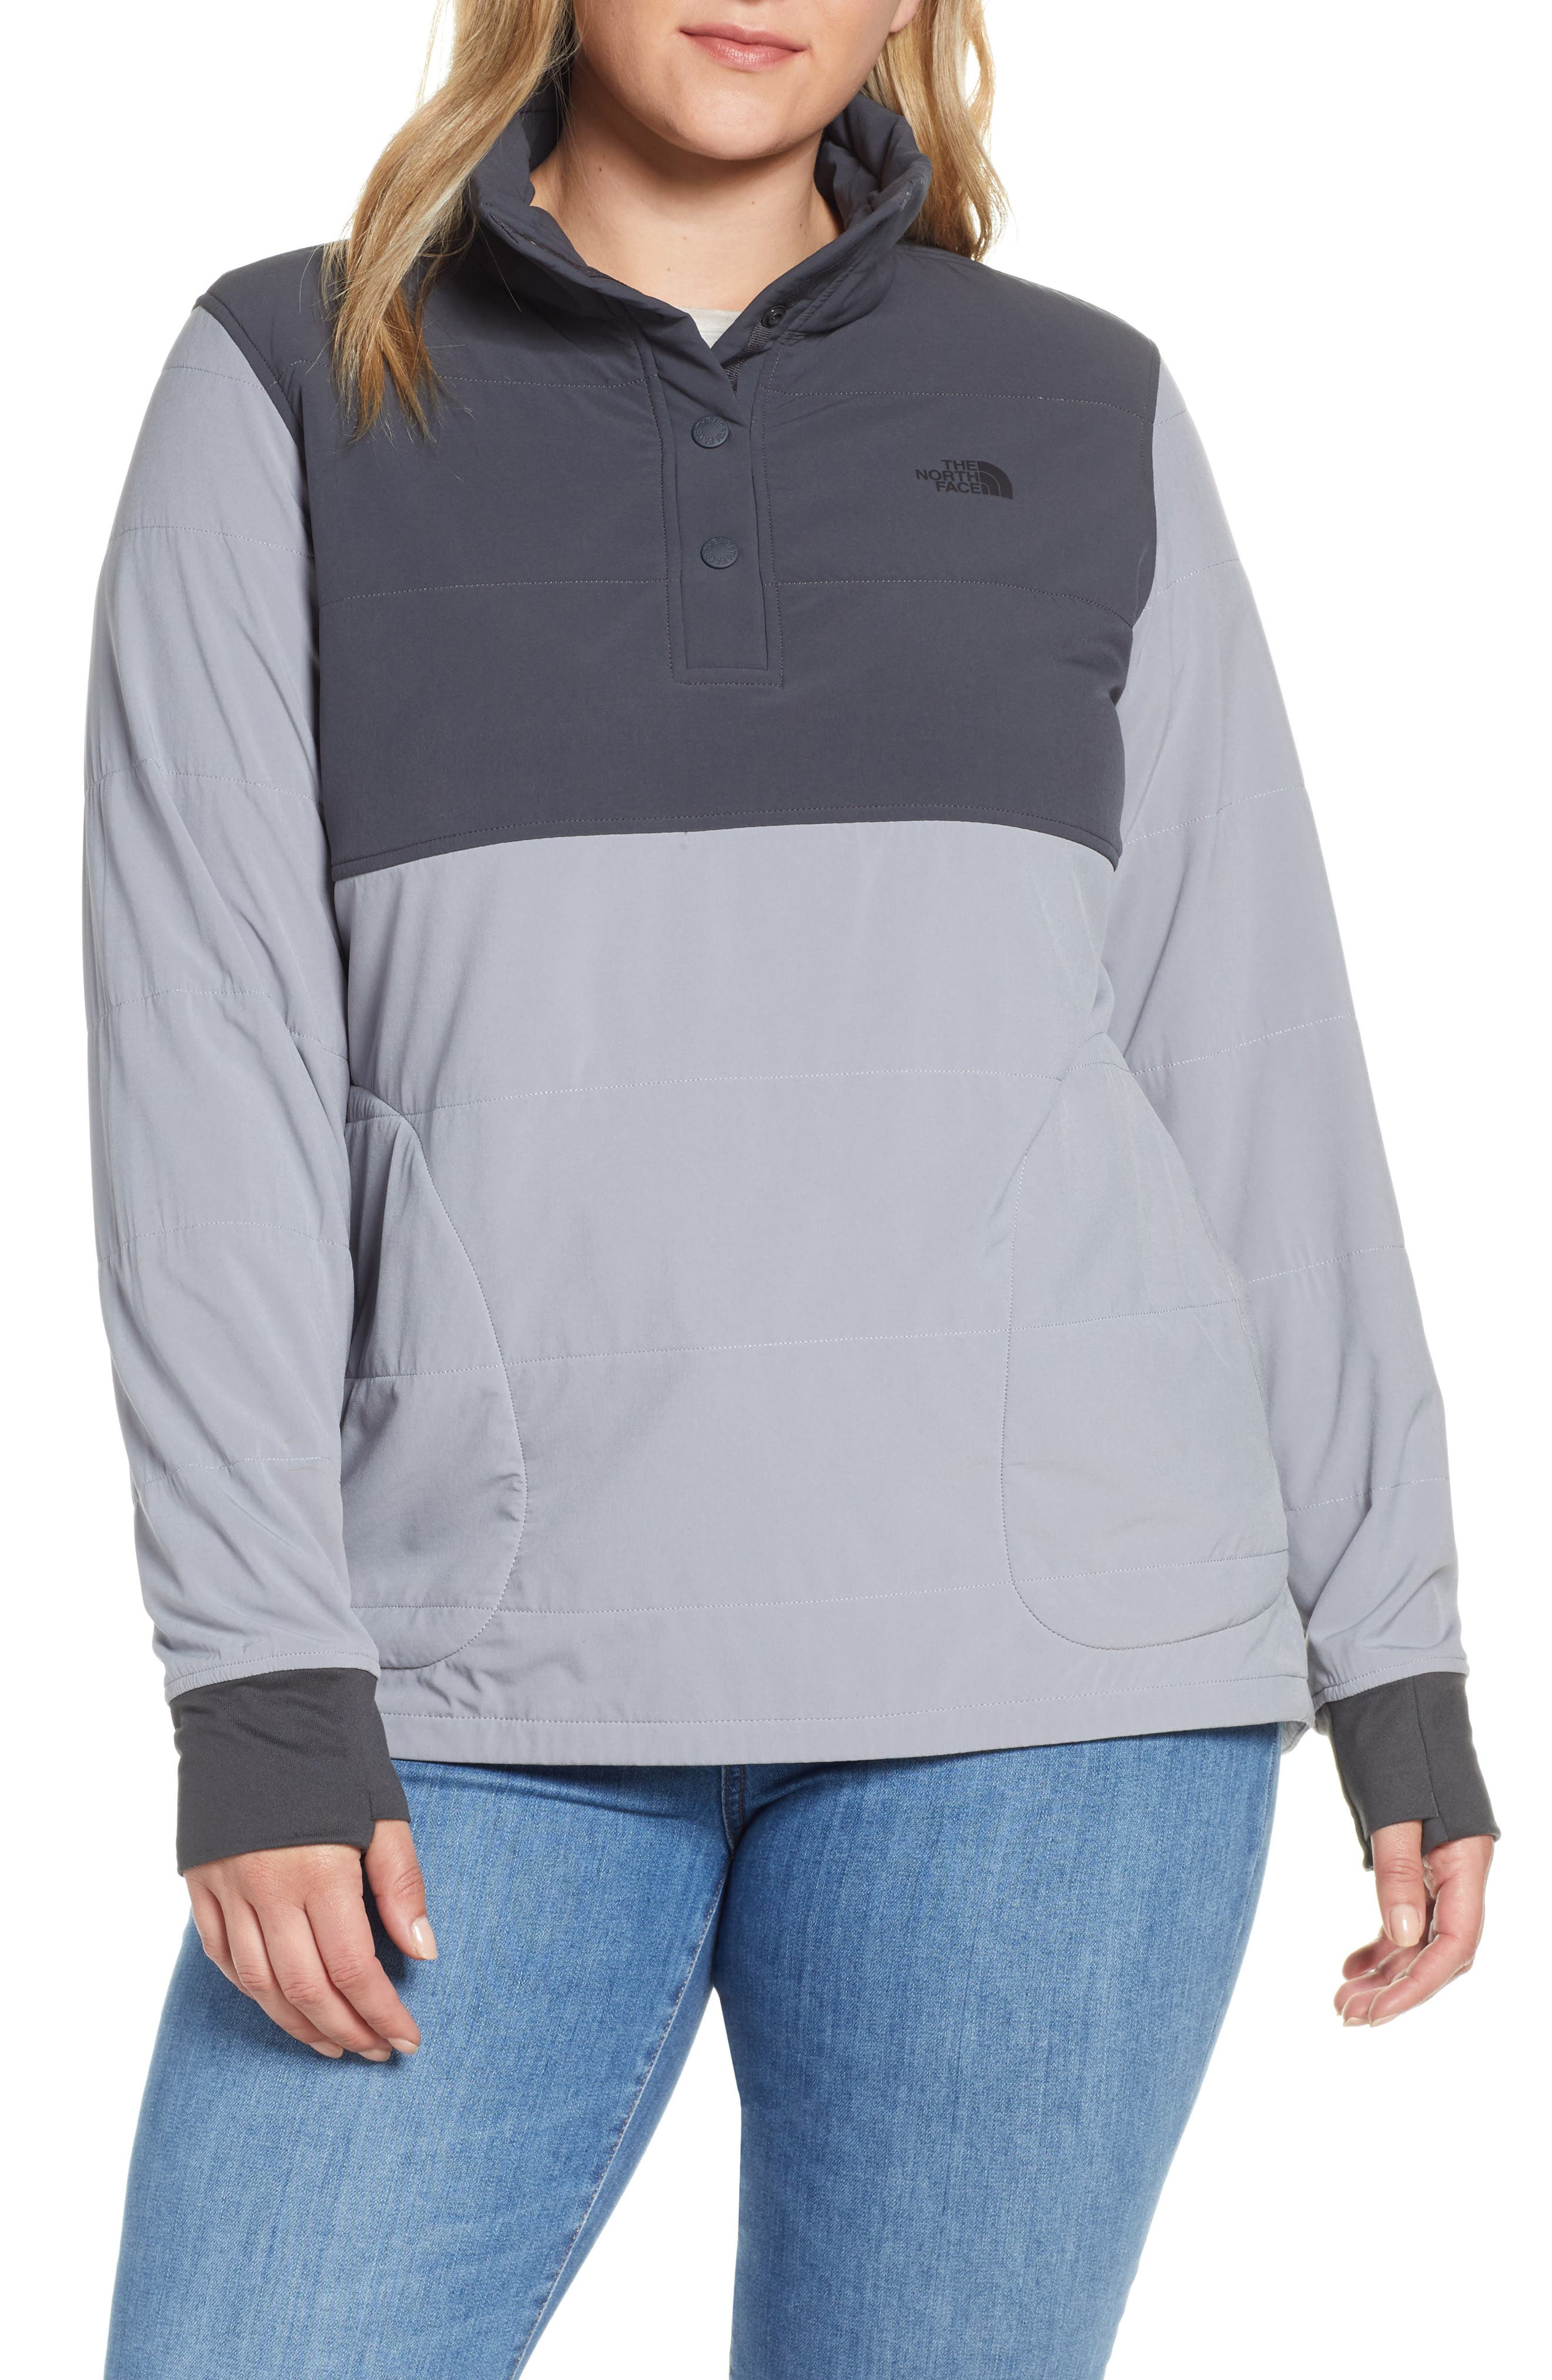 THE NORTH FACE, Mountain Insulated Snap Pullover Jacket, Main thumbnail 1, color, GREY/ MID GREY